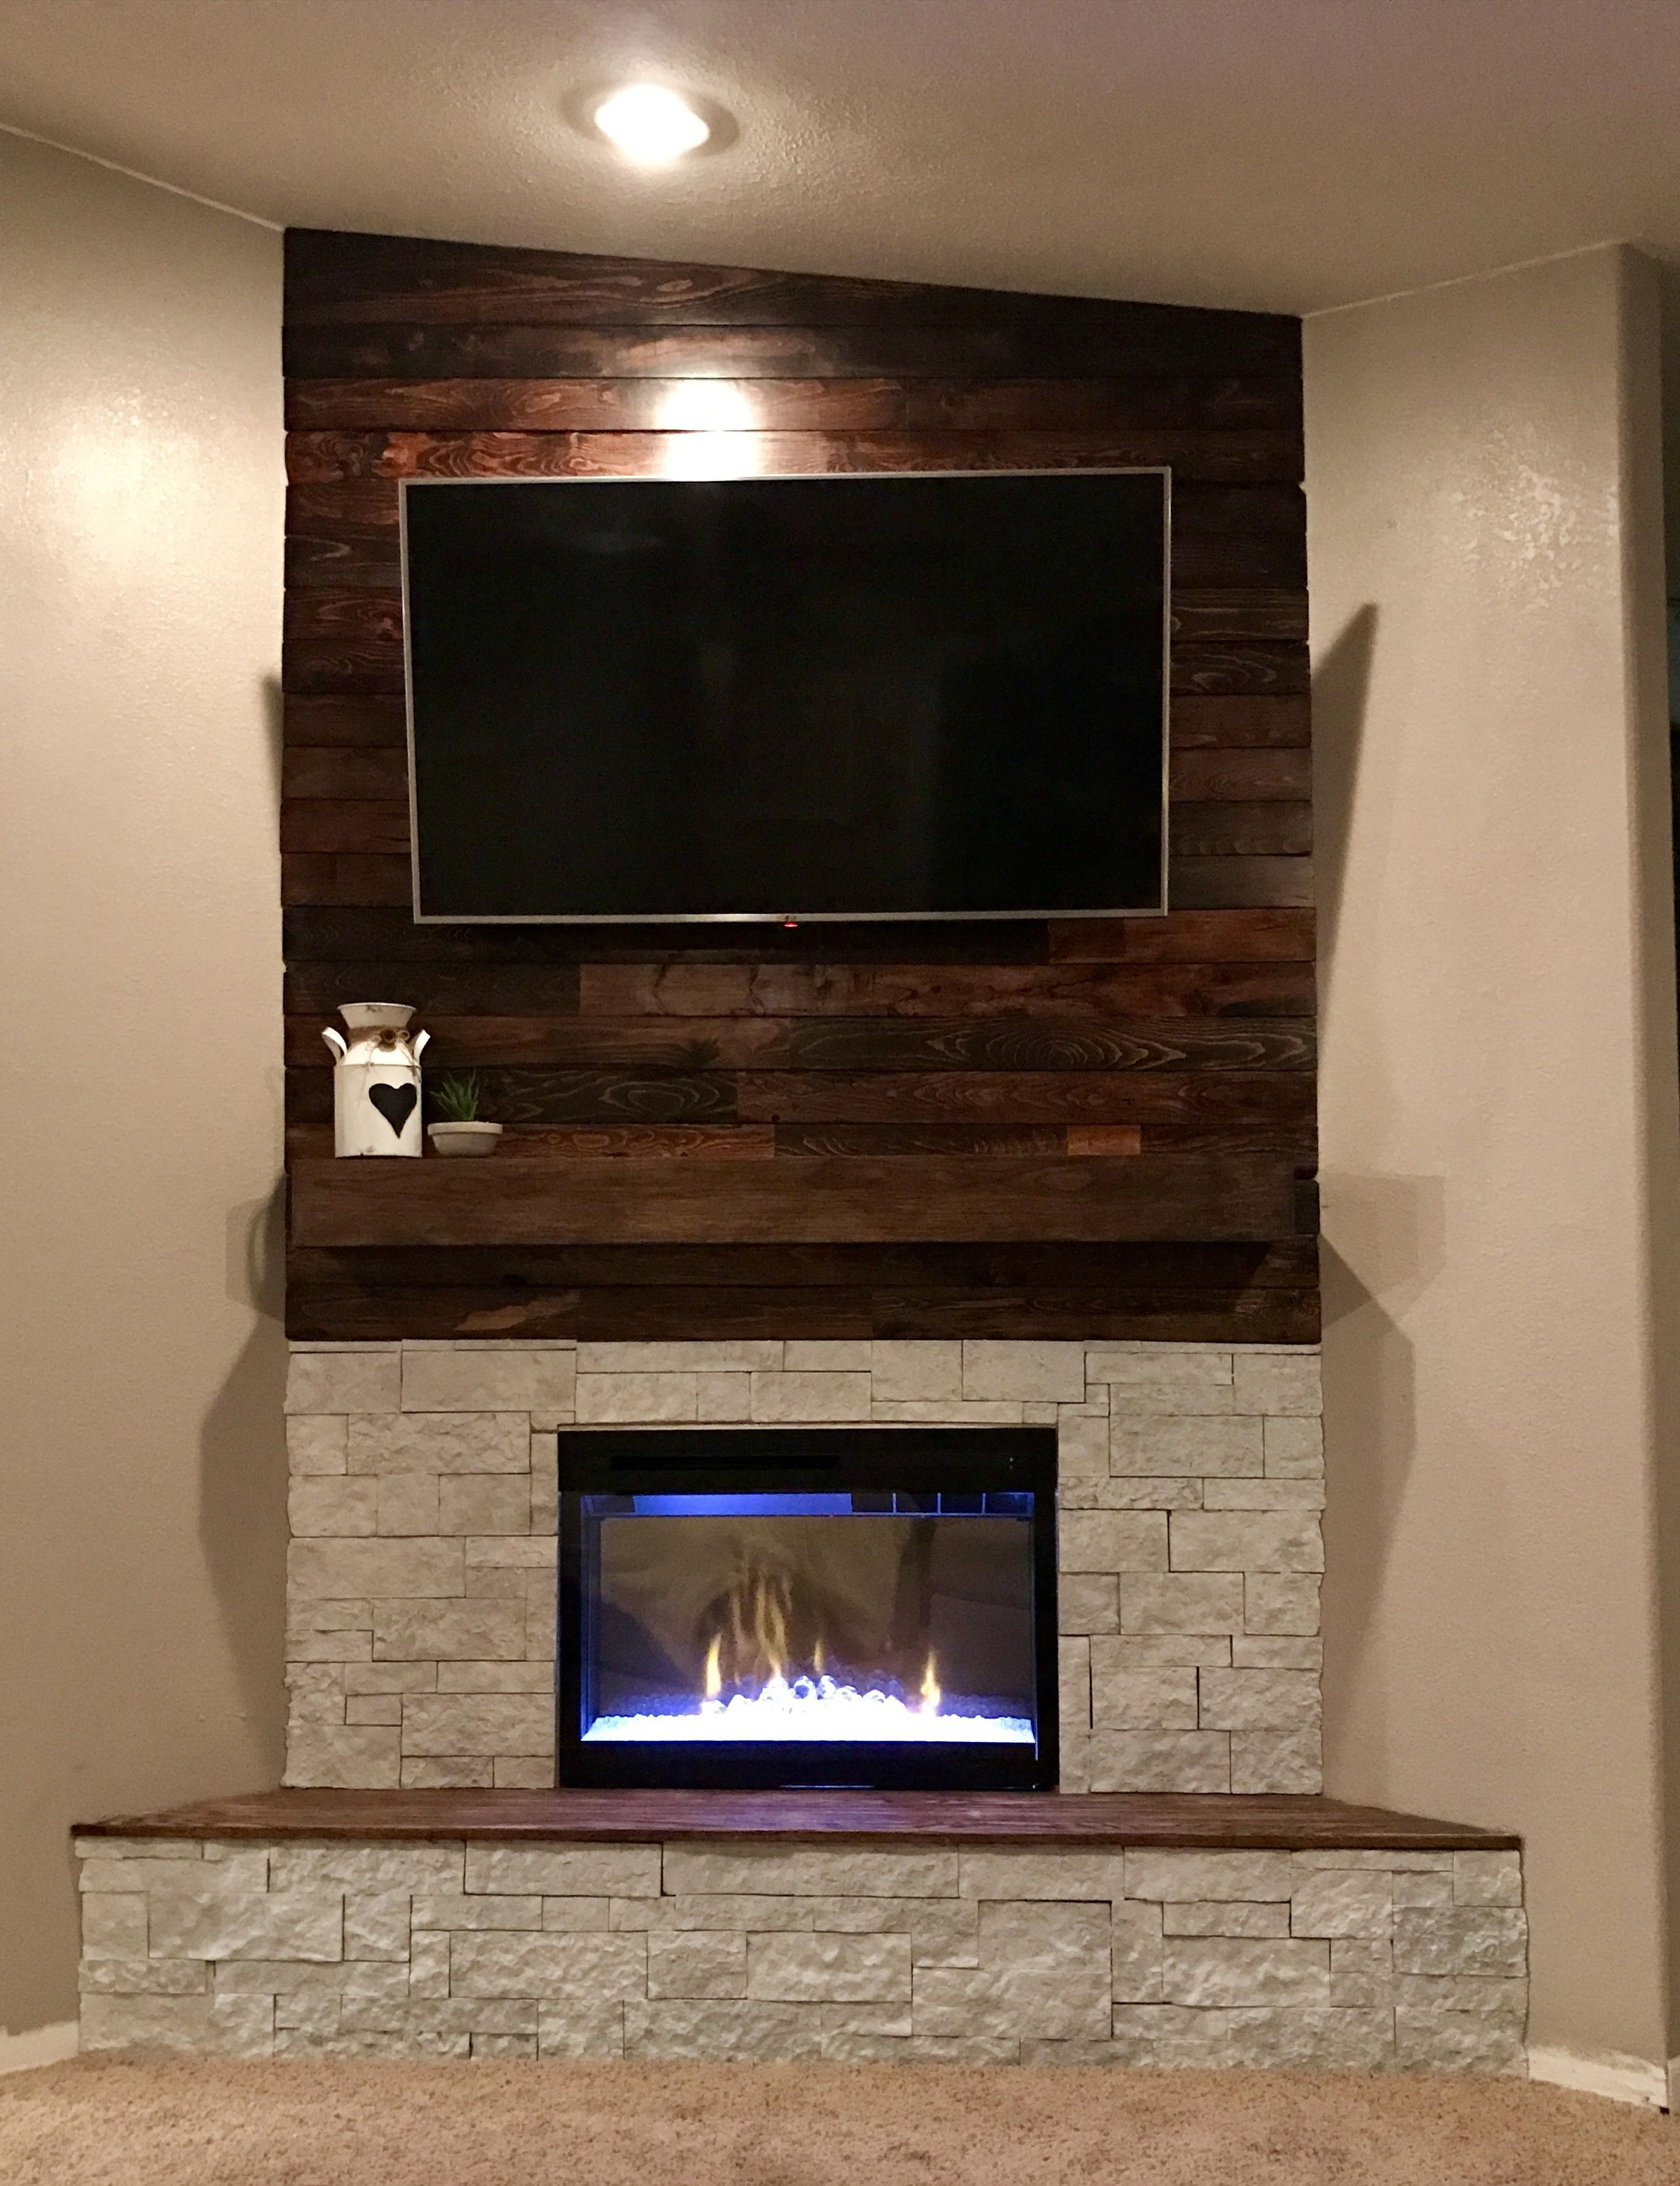 37 Inspiration For Fireplace Corner Ideas With Images Corner